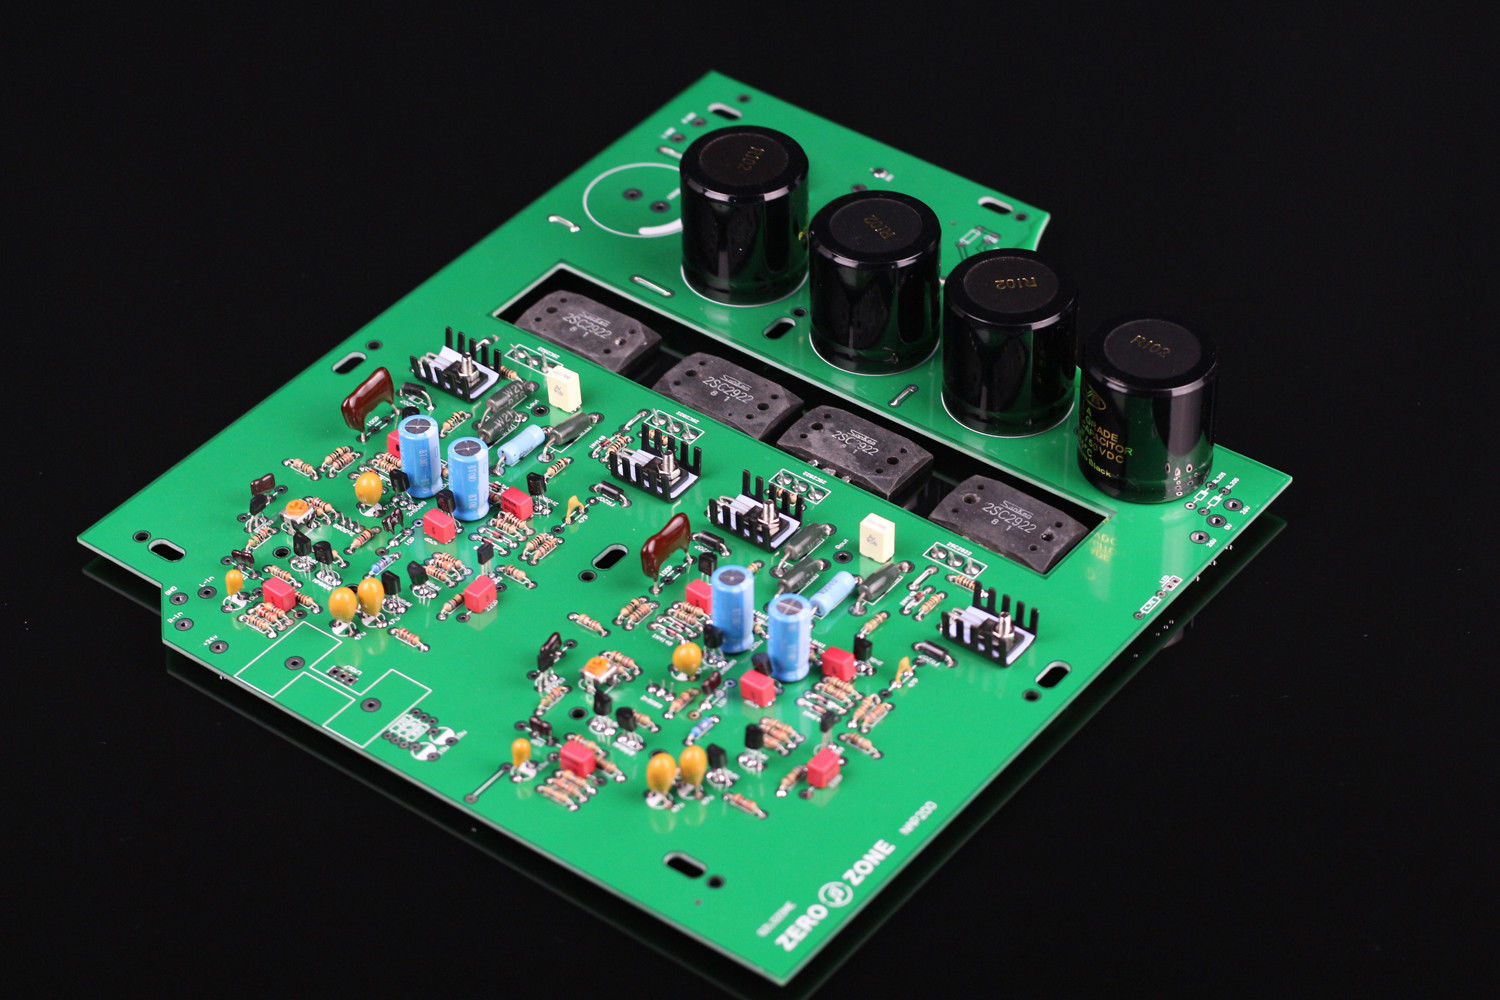 ZEROZONE Assembeld Clone Naim NAP200 Stereo Amplifier board 75W+75W DIY power amp L5-5 stereo nap200 power amplifier base on uk naim black box power amp finished board